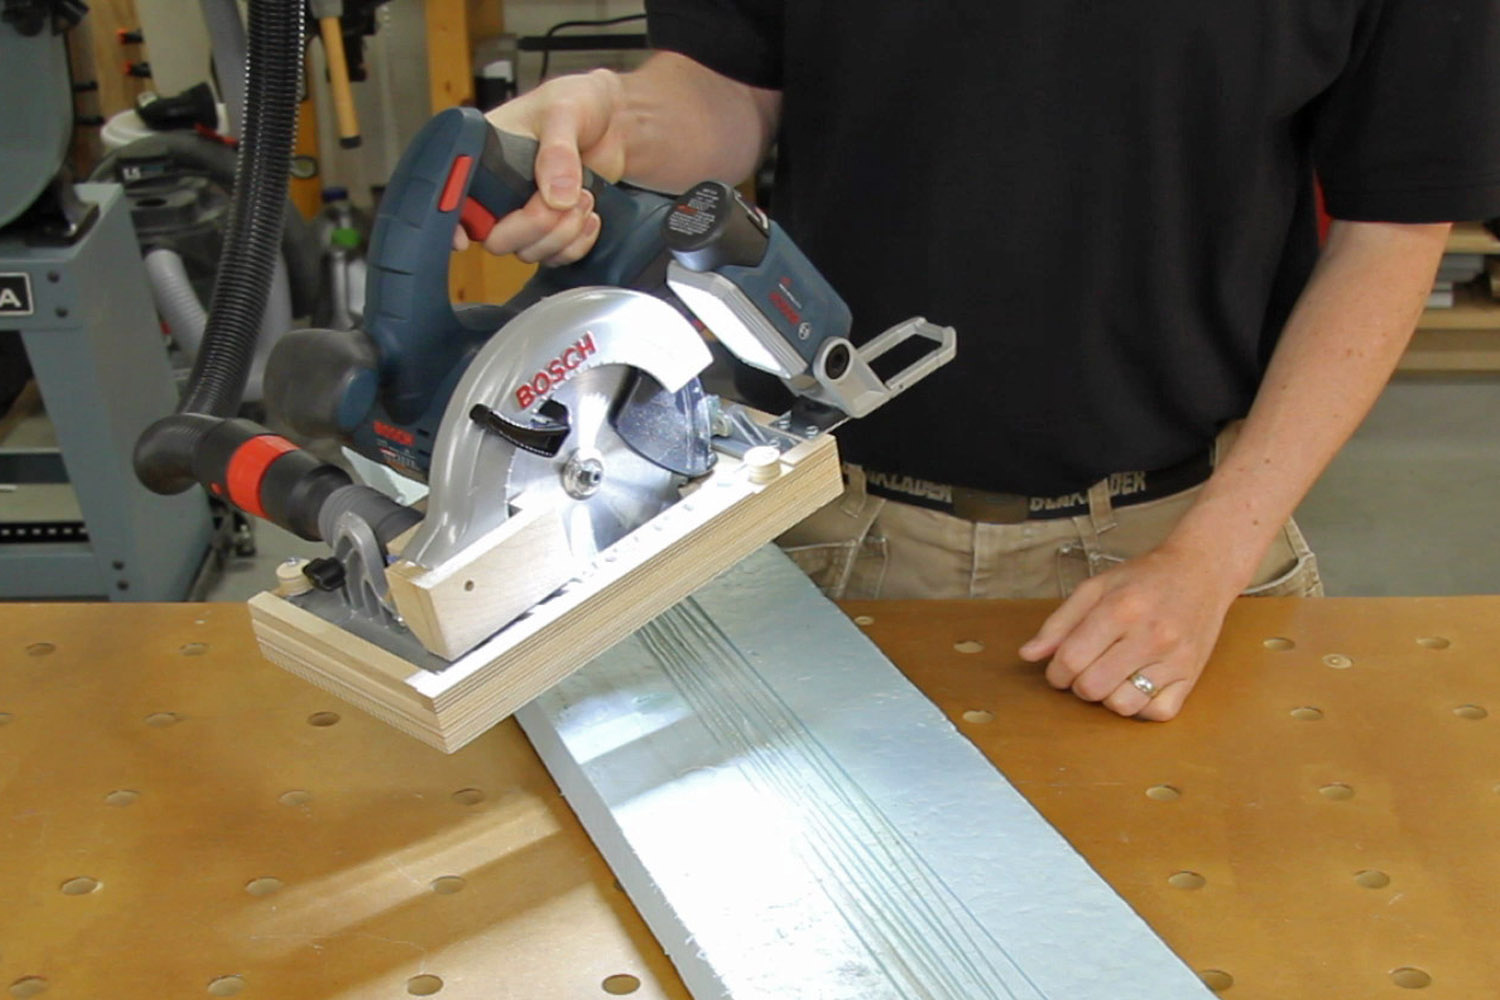 Circular saw ripping jig with saw & LED work light attached